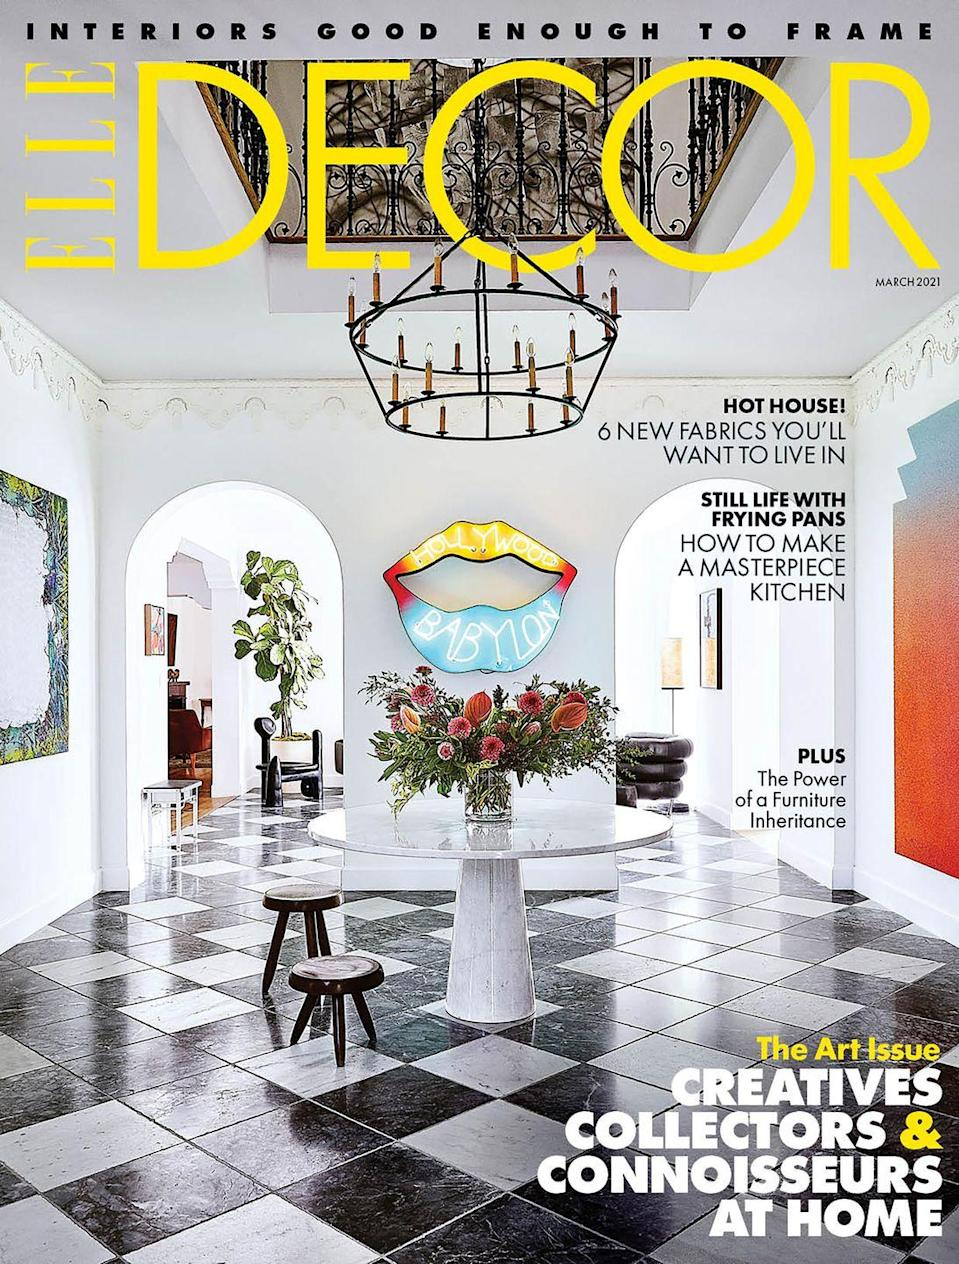 """<p><em>This story originally appeared in the March 2021 issue of </em>ELLE Decor. <a class=""""link rapid-noclick-resp"""" href=""""https://subscribe.hearstmags.com/subscribe/splits/elledecor/edccsb"""" rel=""""nofollow noopener"""" target=""""_blank"""" data-ylk=""""slk:SUBSCRIBE"""">SUBSCRIBE</a></p>"""